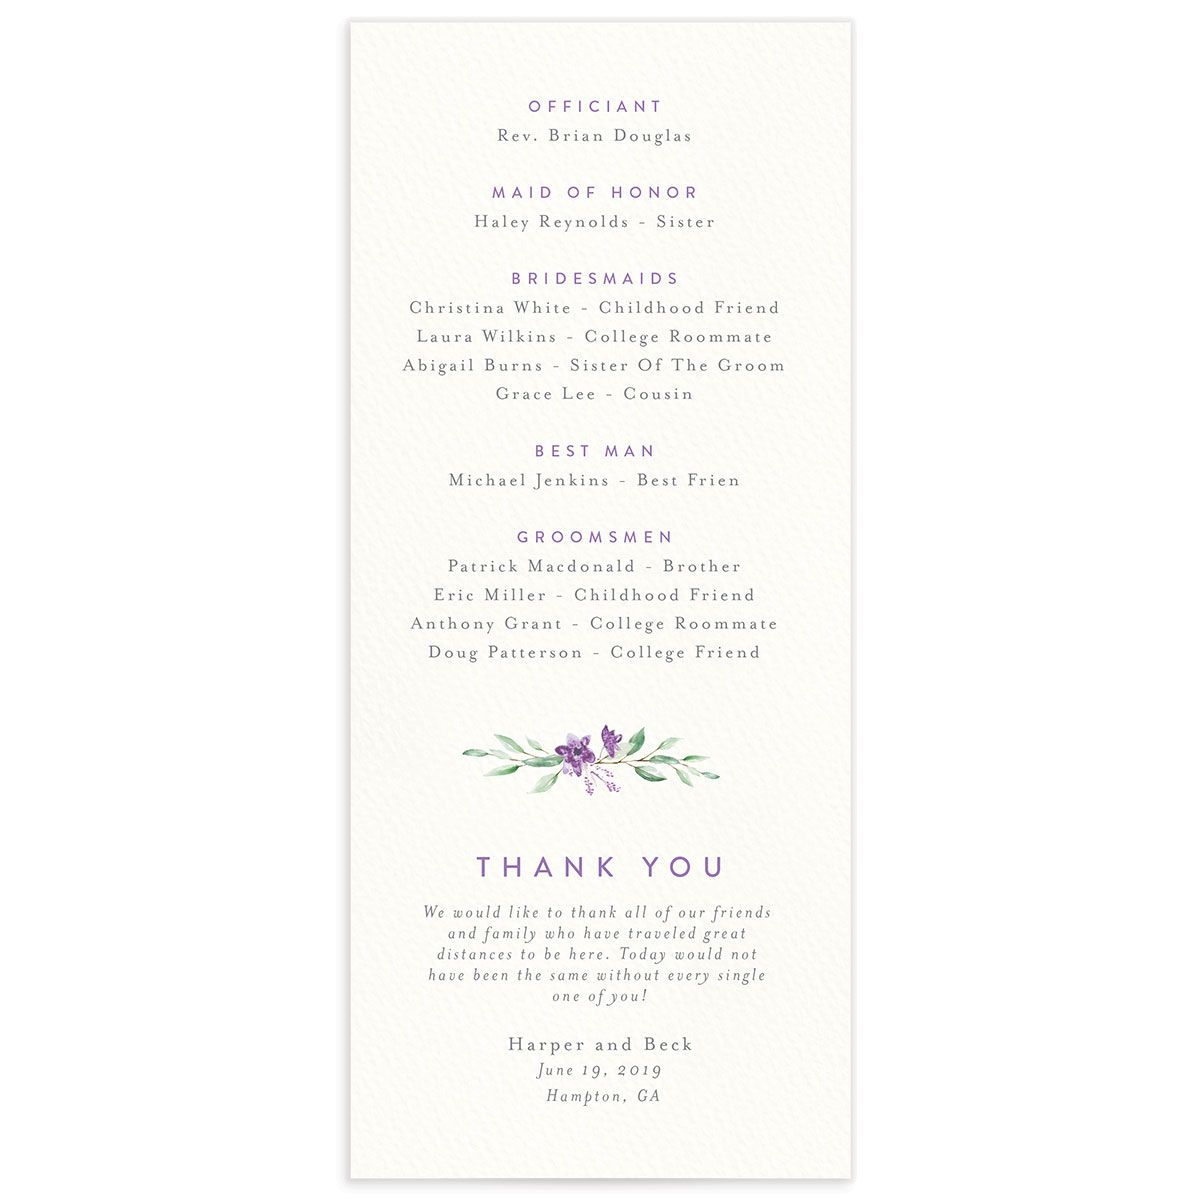 watercolor crest wedding programs in purple back